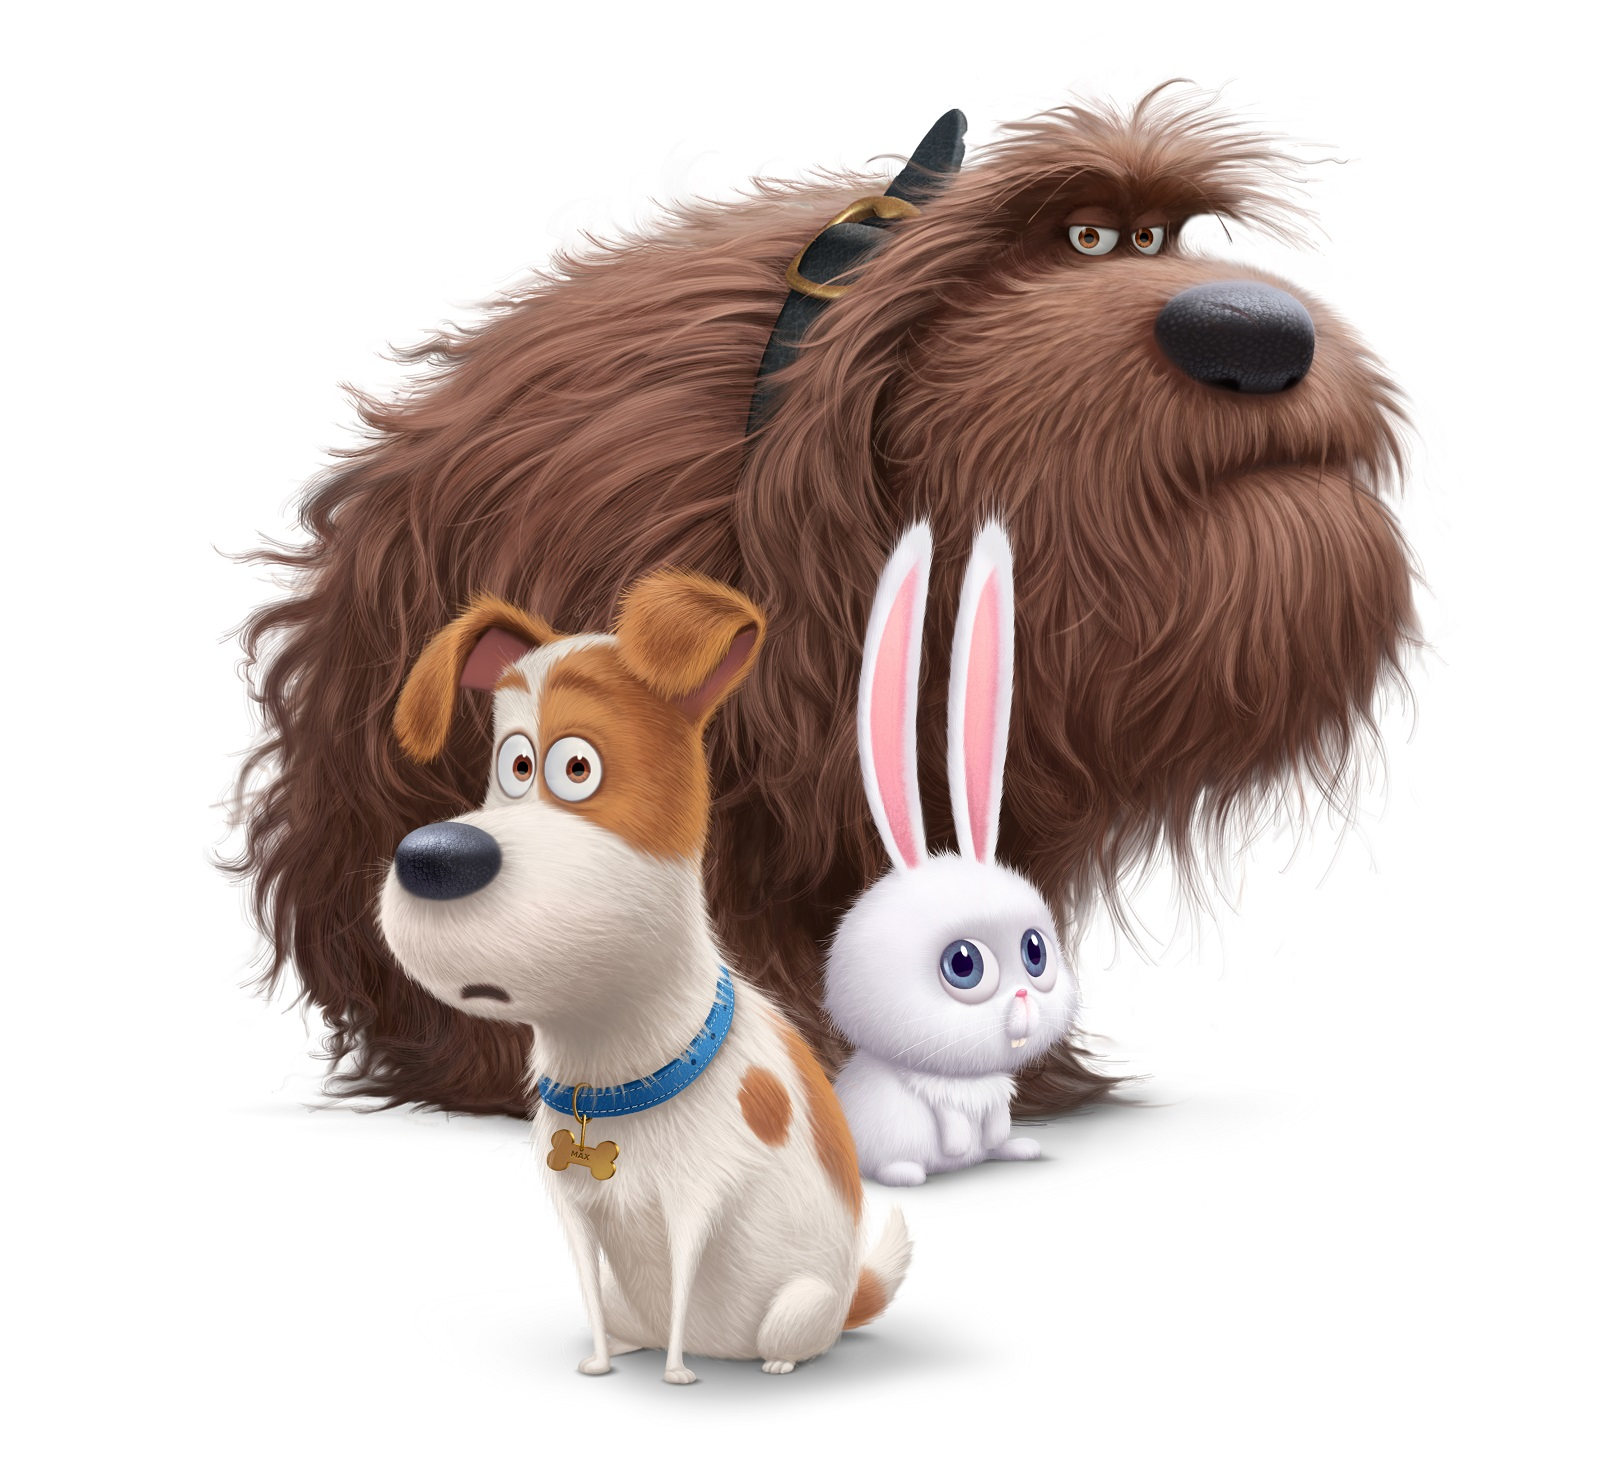 Go behind the scenes of The Secret Life Of Pets!